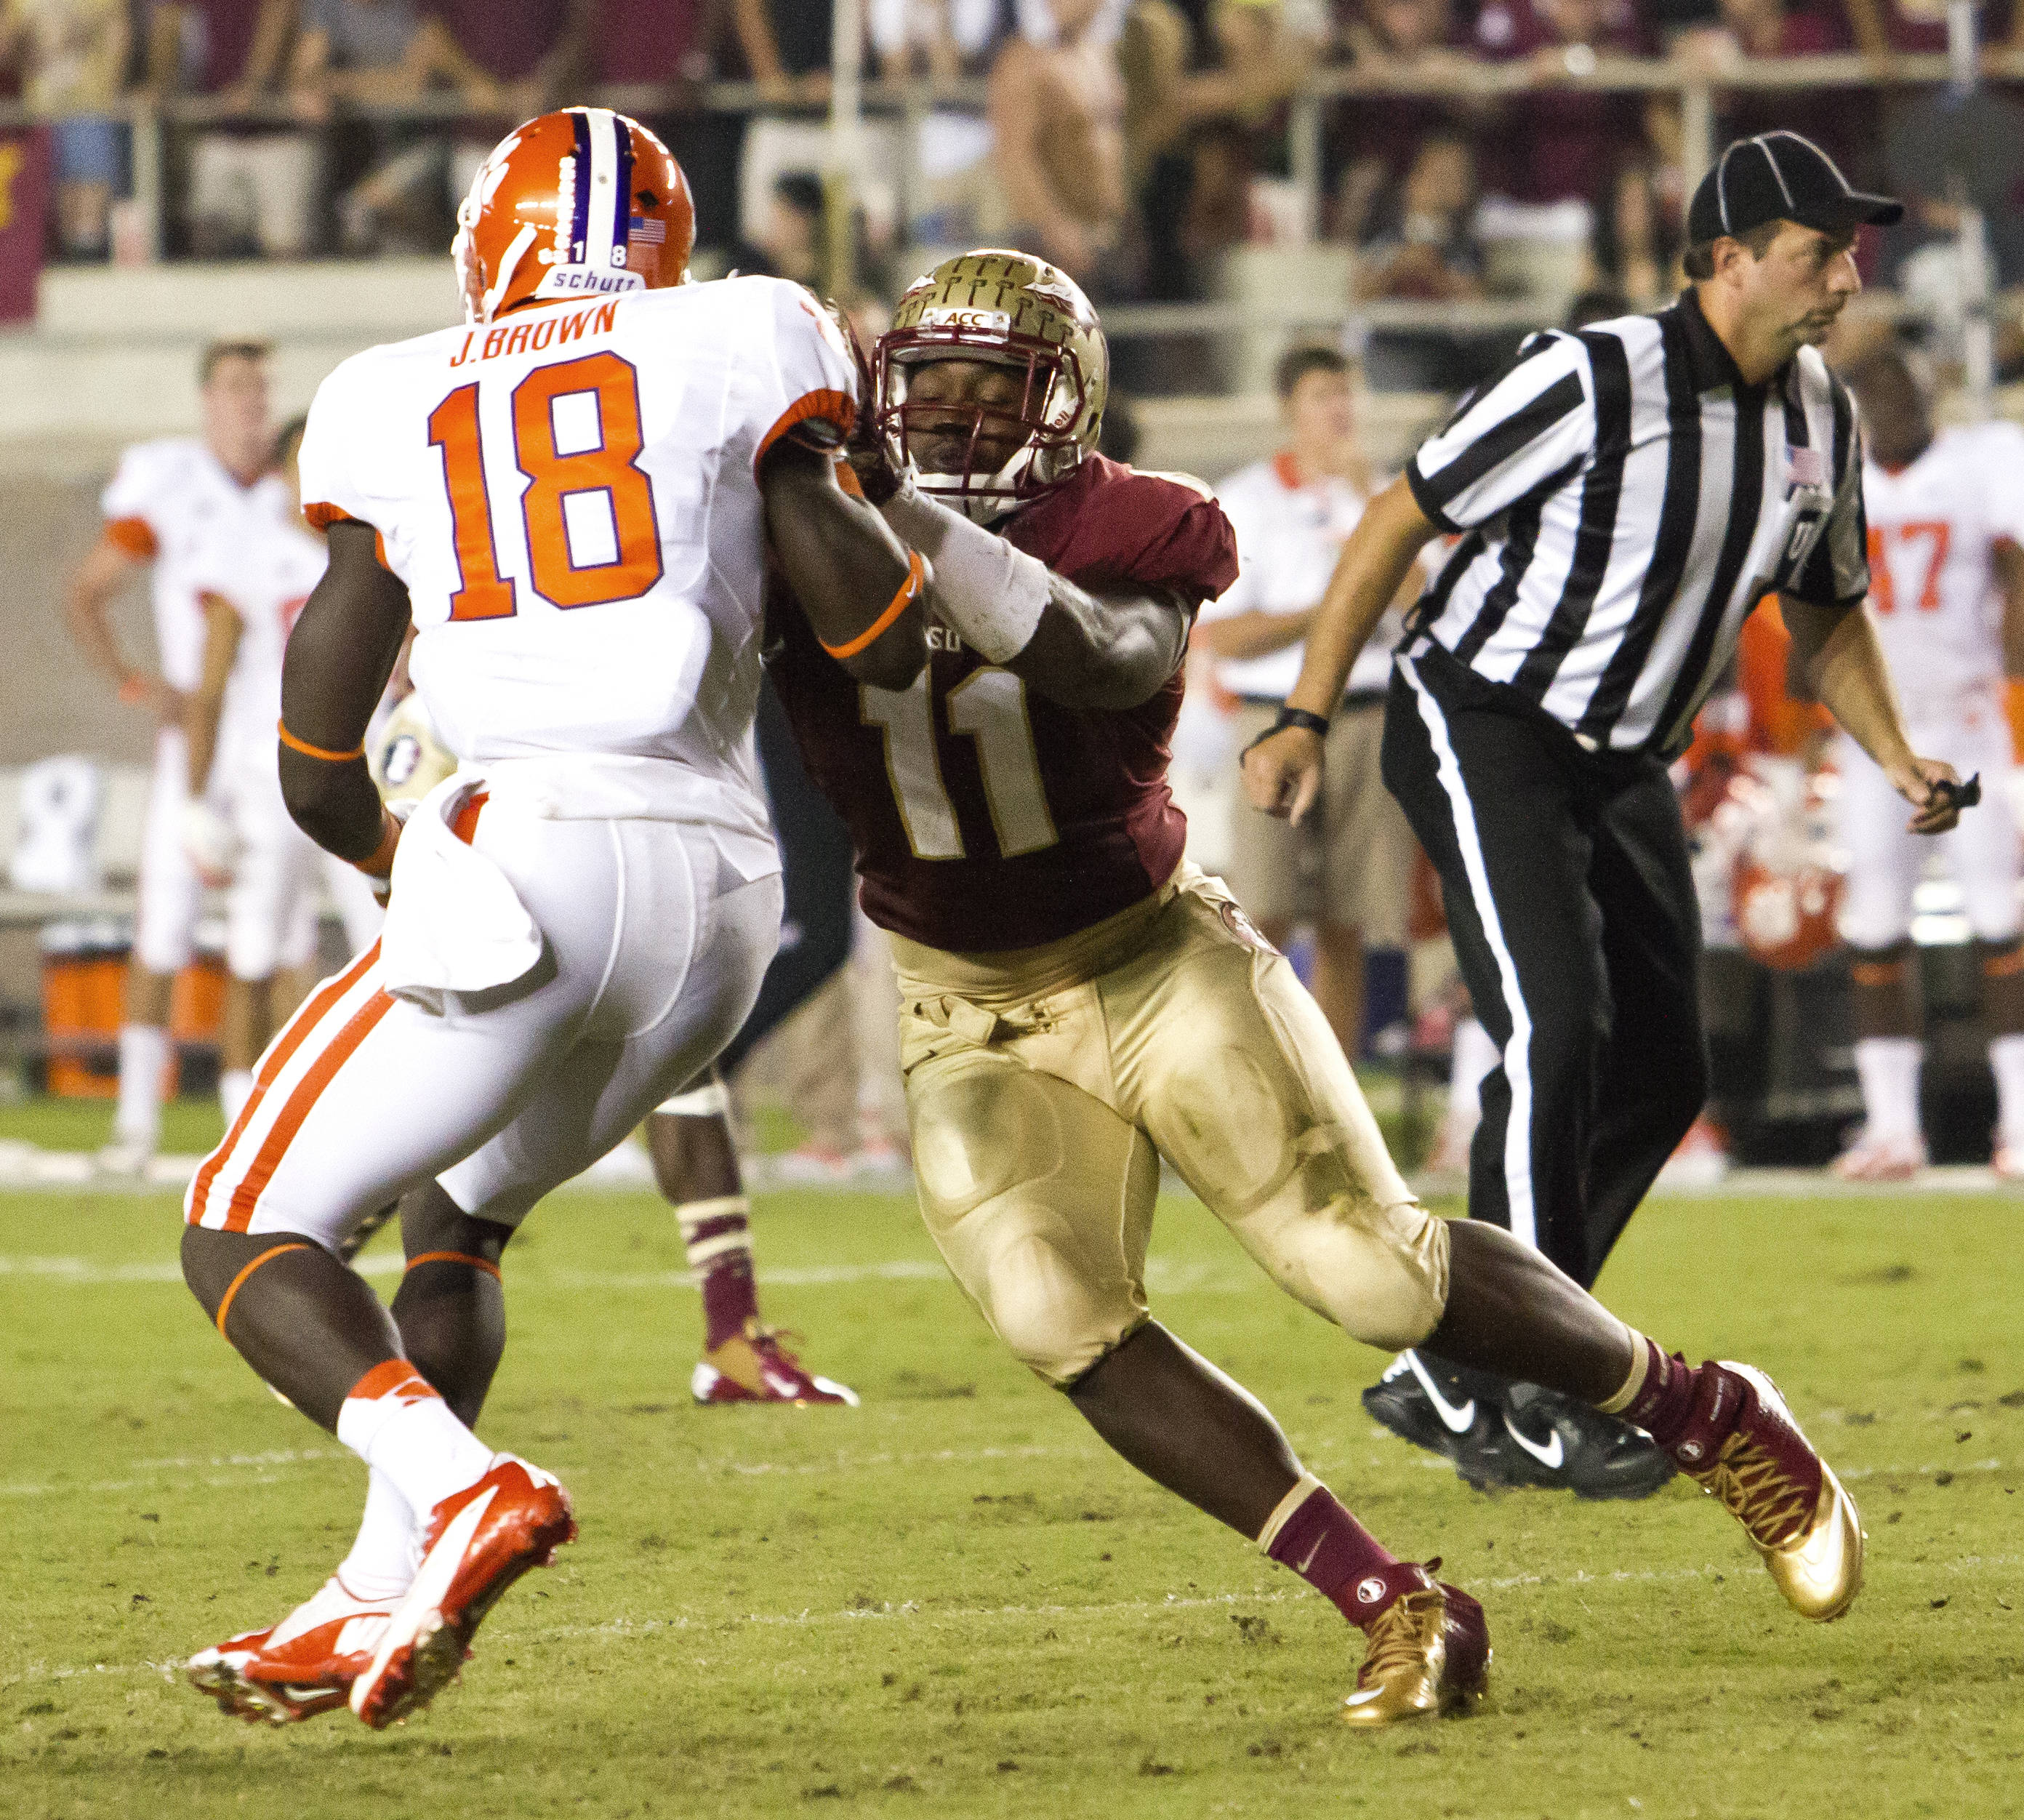 Vince Williams (11) slowing down a receiver, FSU vs Clemson, 9/22/12 (Photo by Steve Musco)